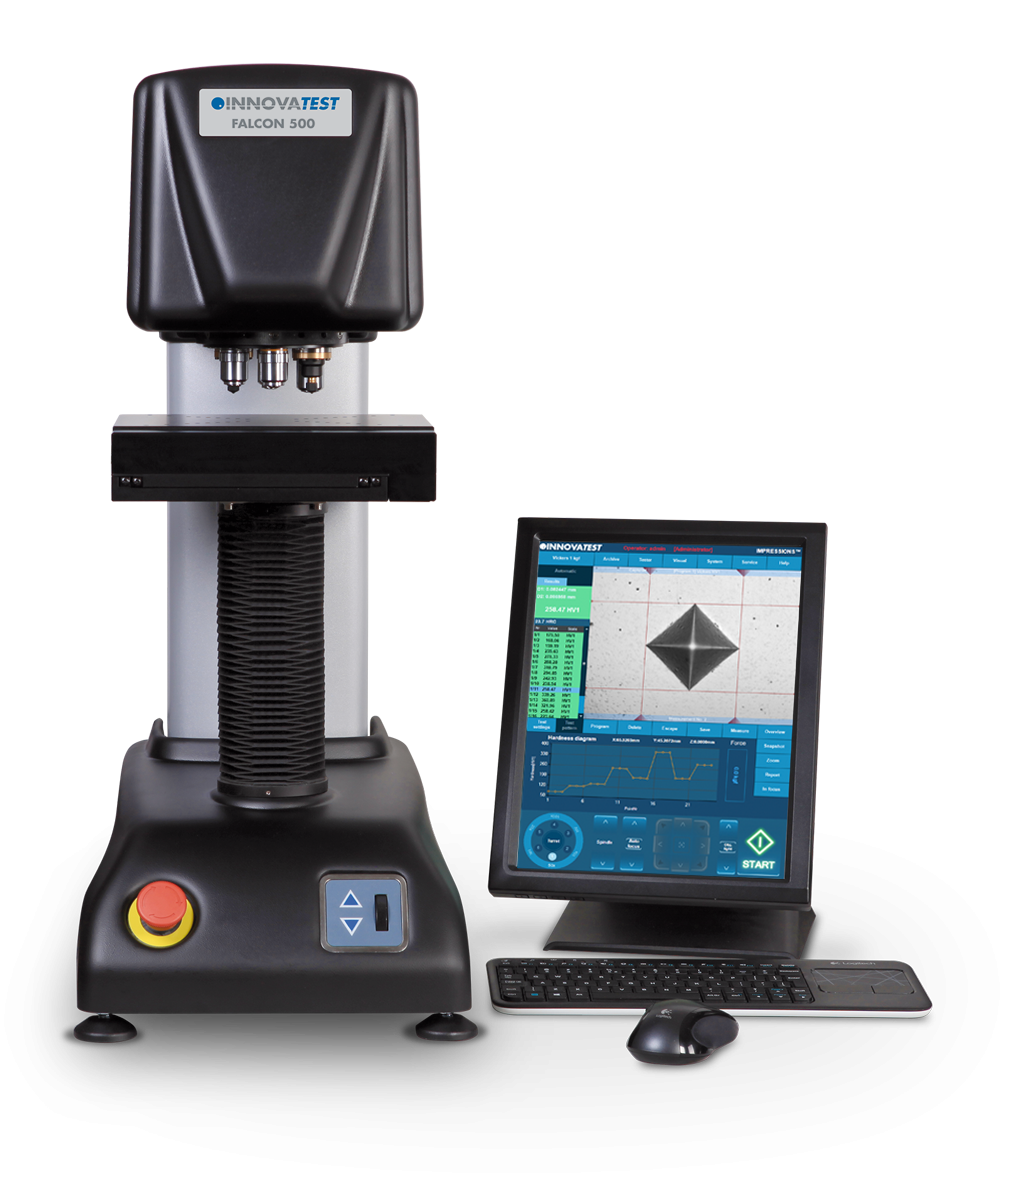 innovatest-falcon-500-front-vickers-hardness-tester